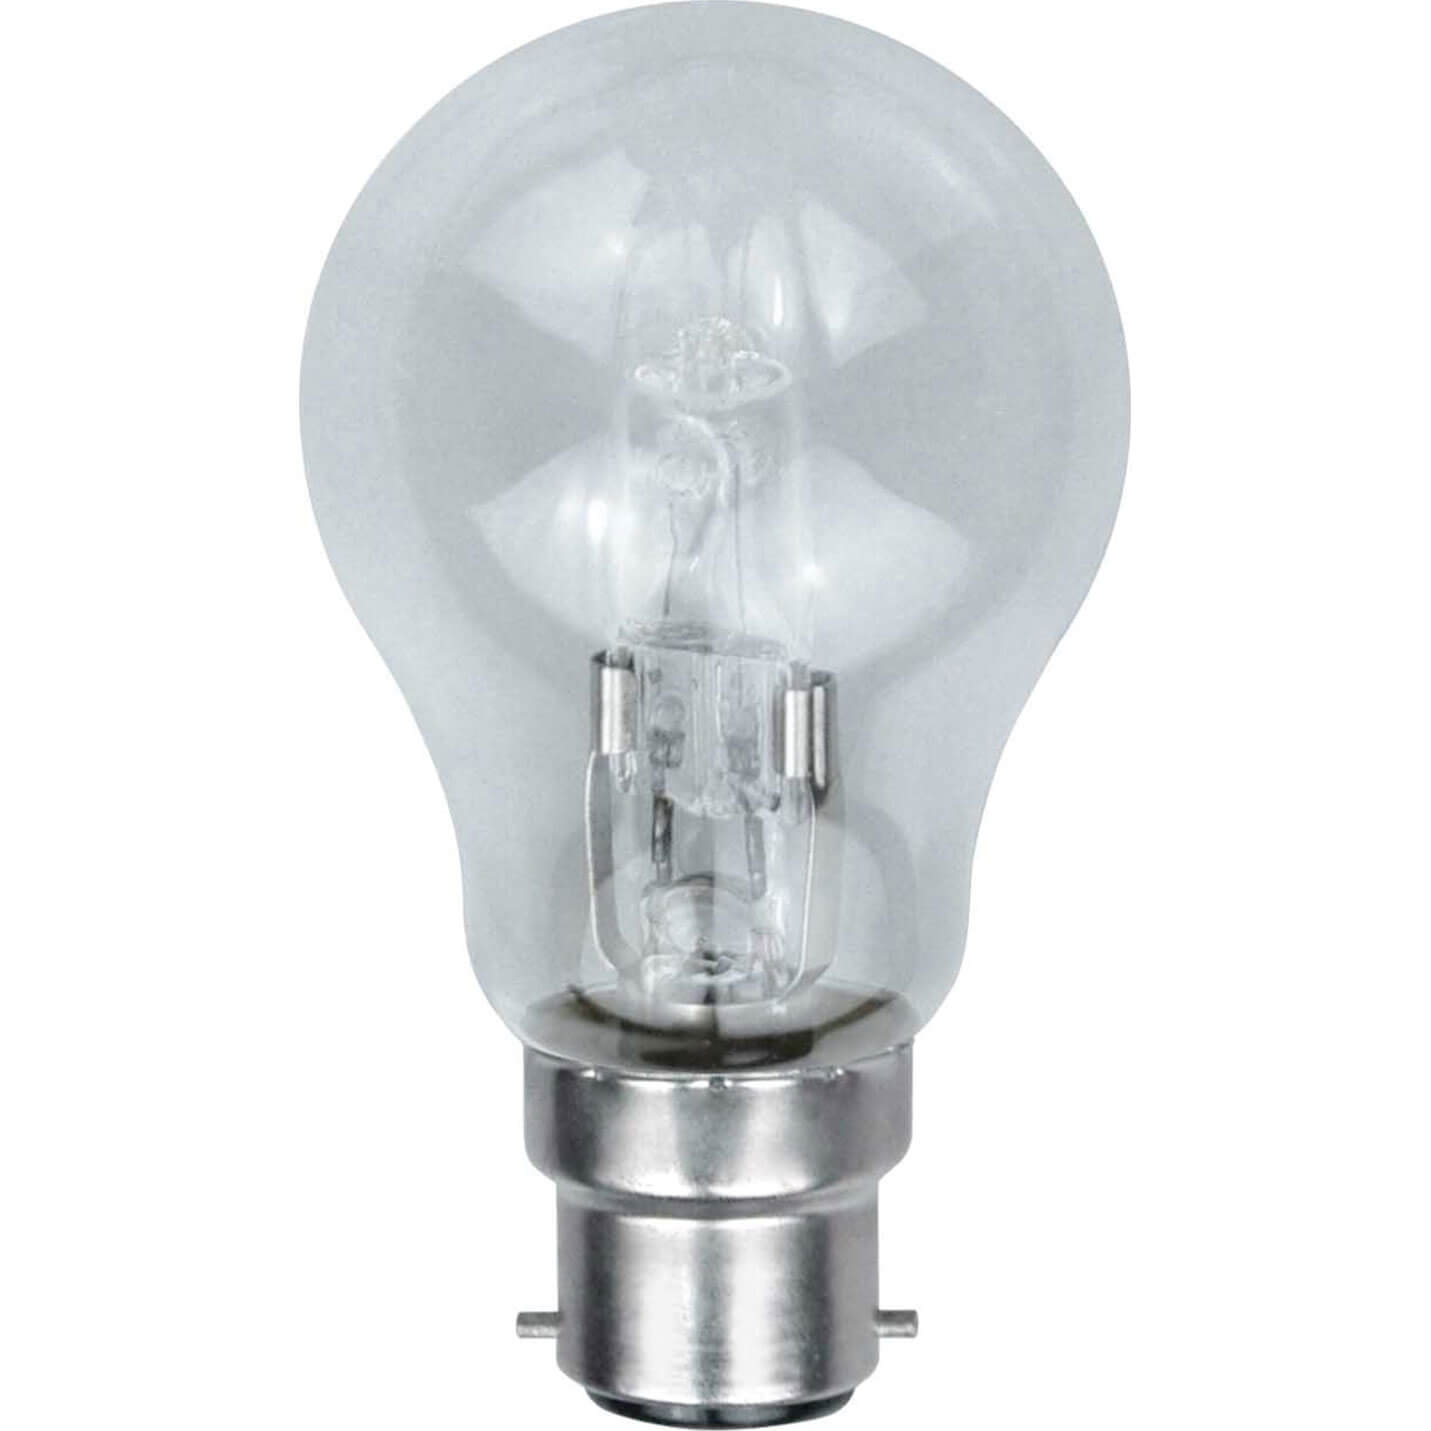 Image of Eveready Energy Save GLS Halogen Bulb BC / B22 Bayonet Cap 28w